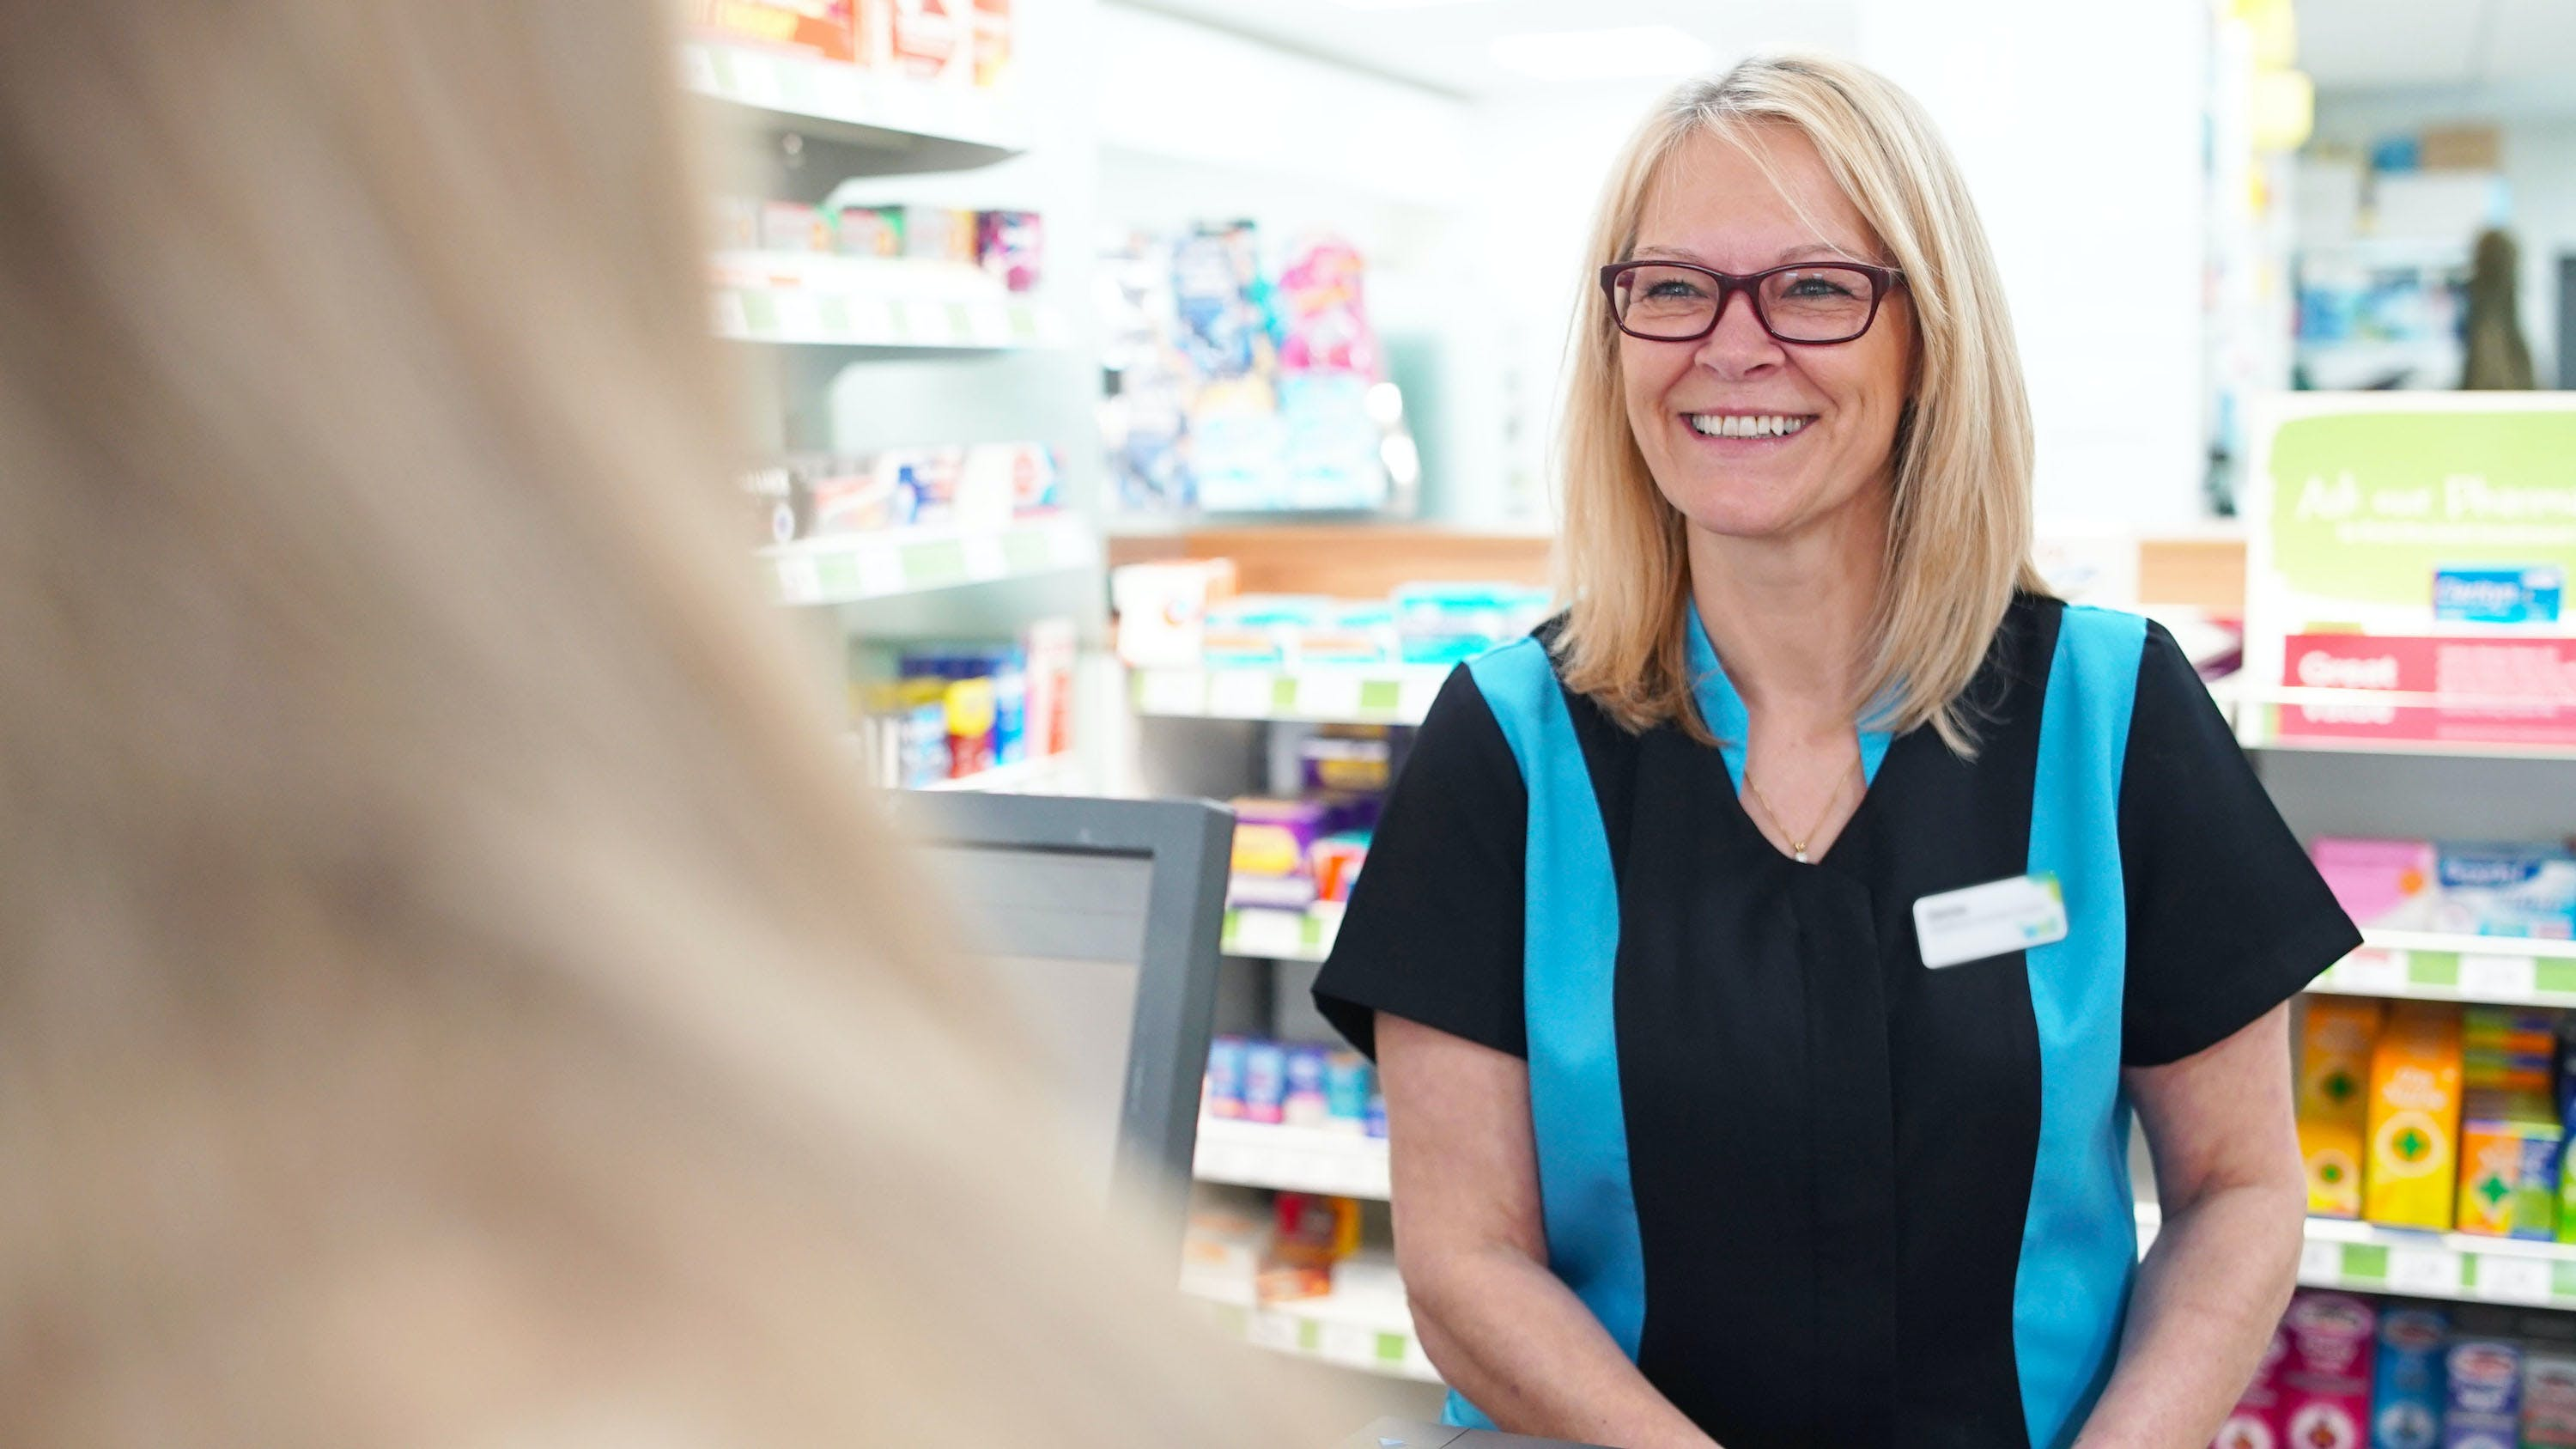 Denise, a Pharmacy Assistant